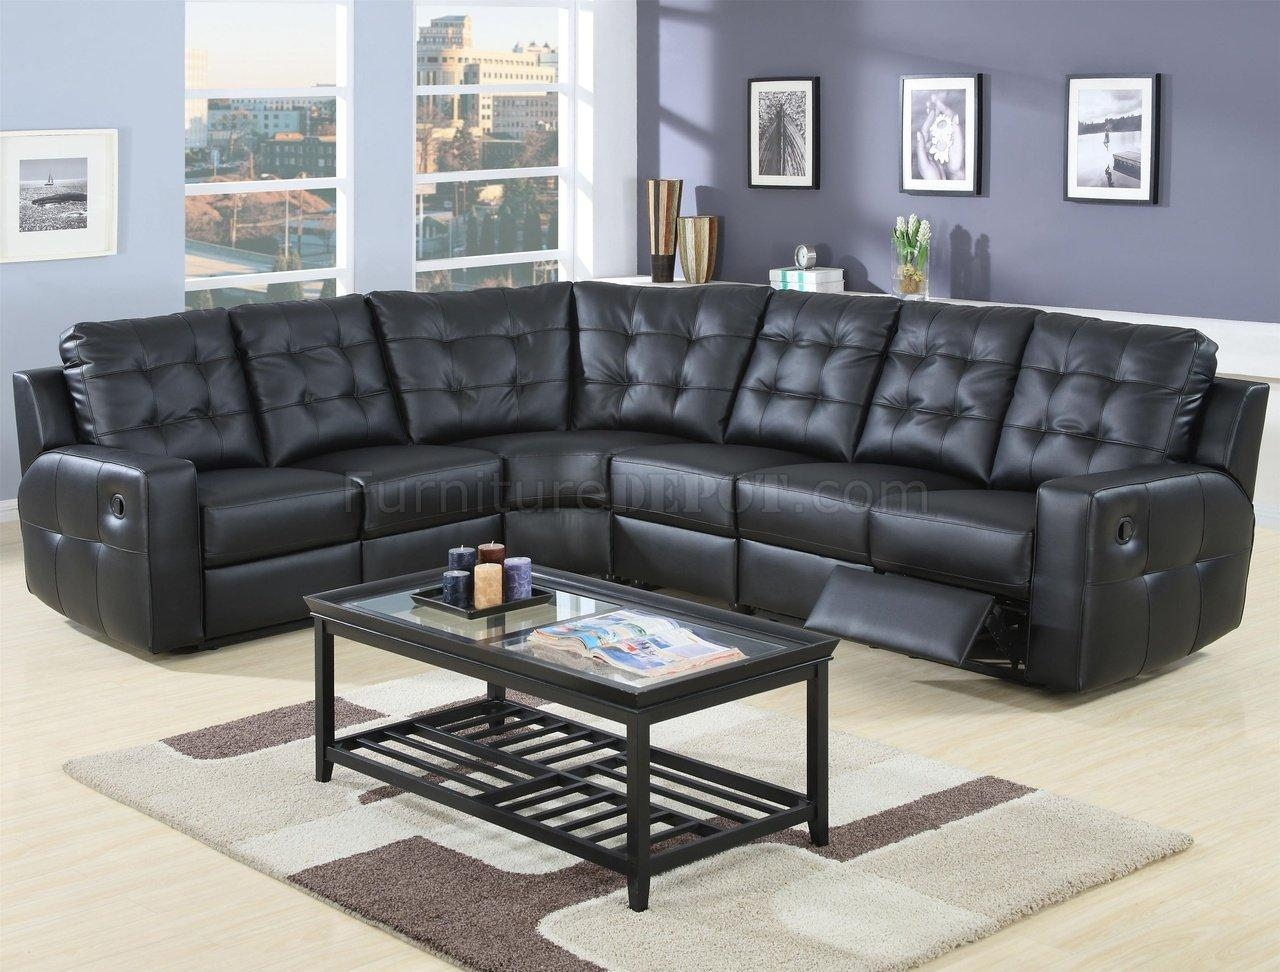 Modern Leather Double Reclining Sectional Sofa 600315 Black Inside Modern Reclining Sectional (Image 13 of 20)